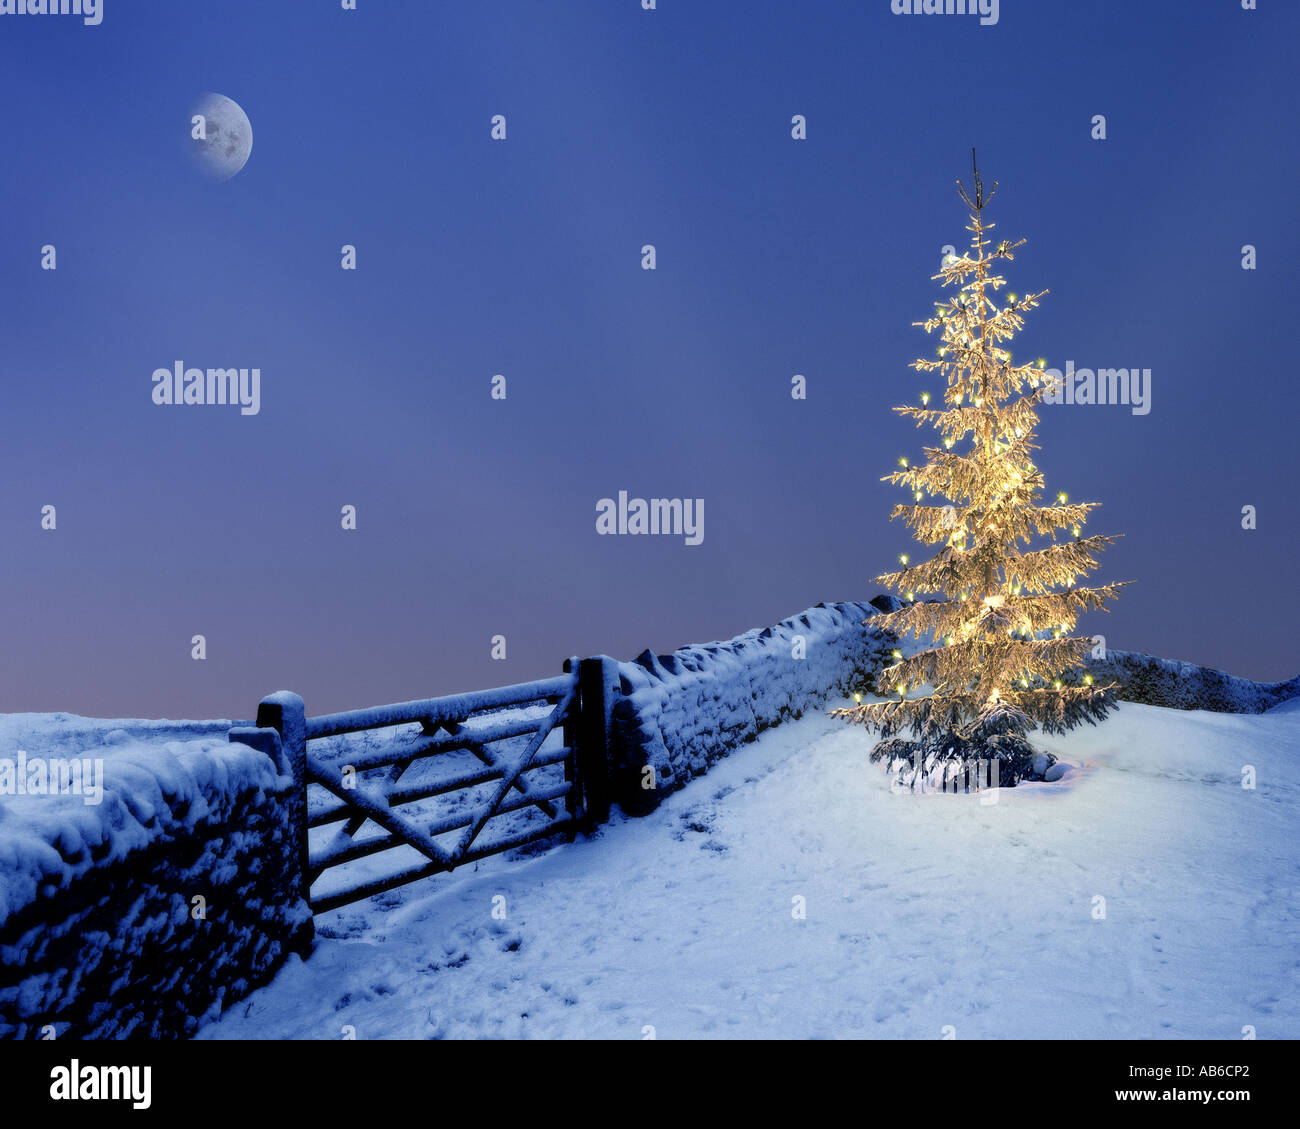 GB - GLOUCESTERSHIRE:  Christmas in the Cotsworlds - Stock Image